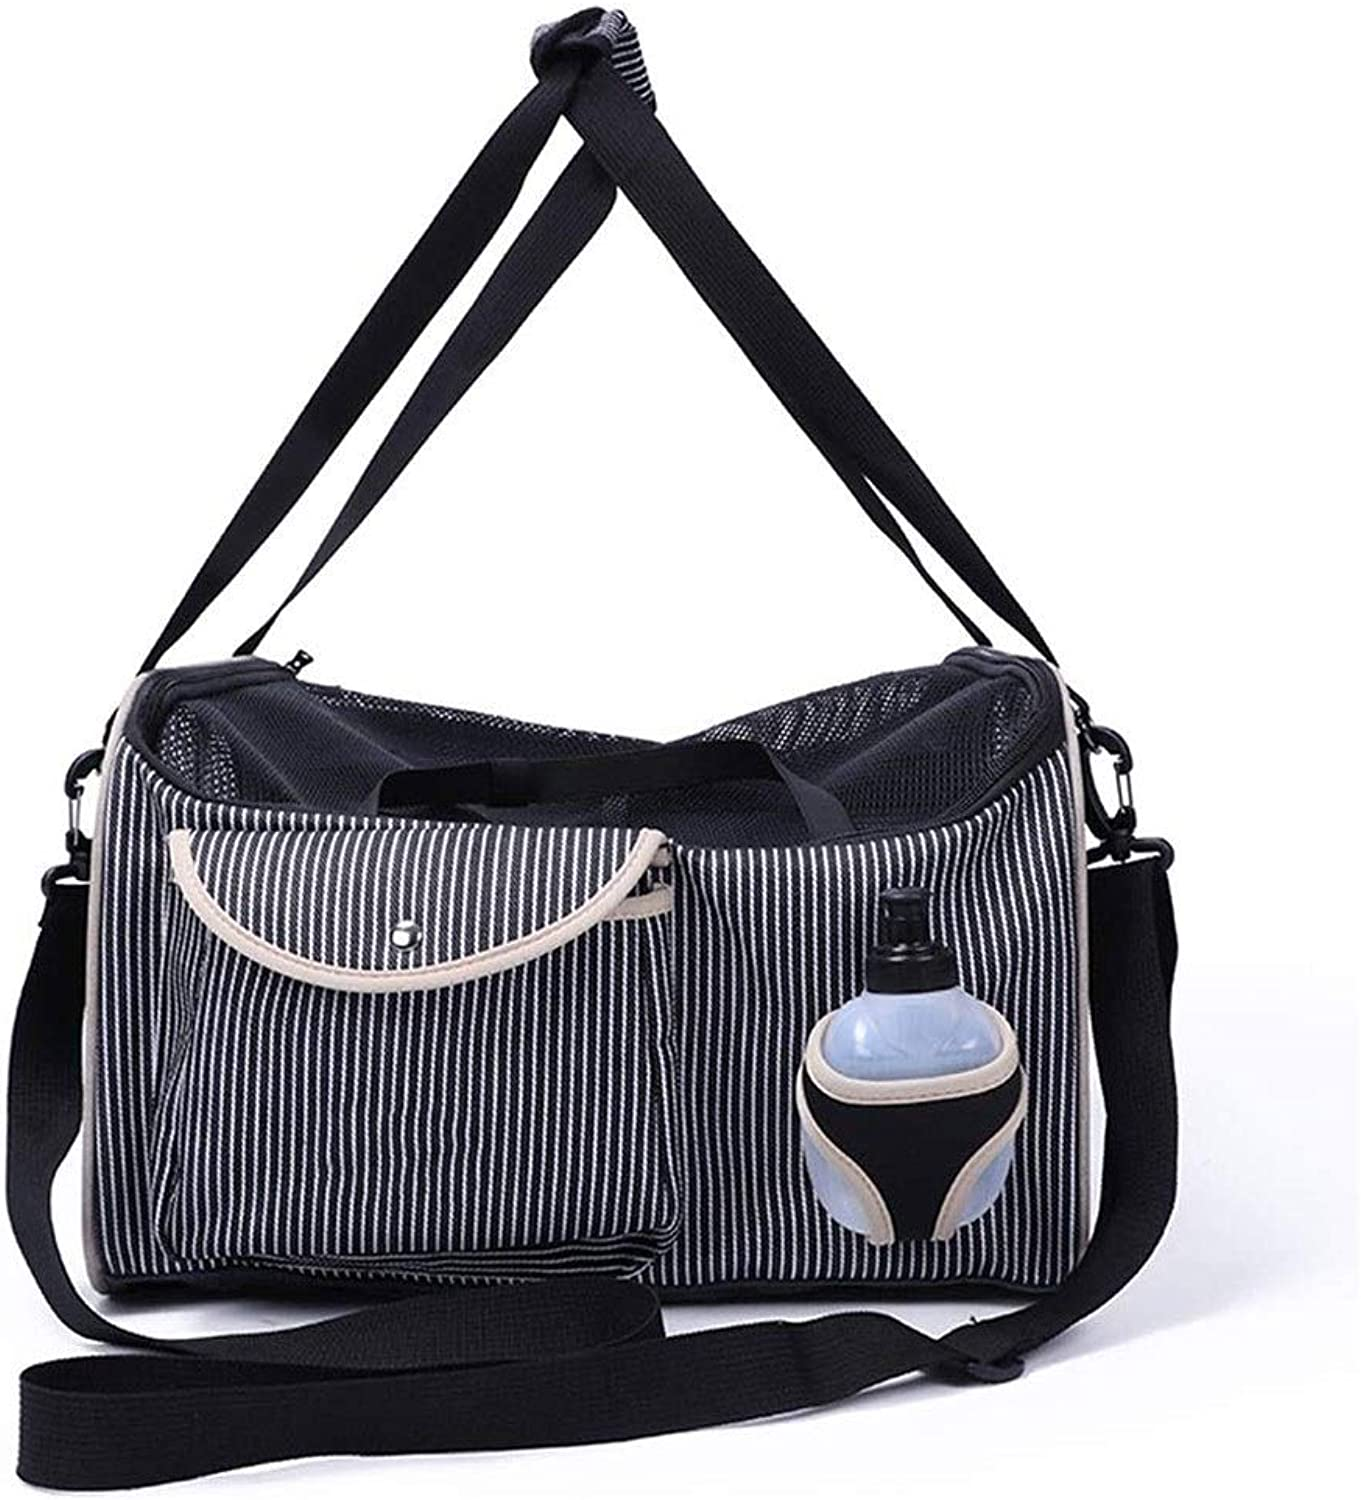 Anap Airline Approved Pet Carriers,Collapsible Soft Sided Pet Travel Carrier for Dogs and Cats